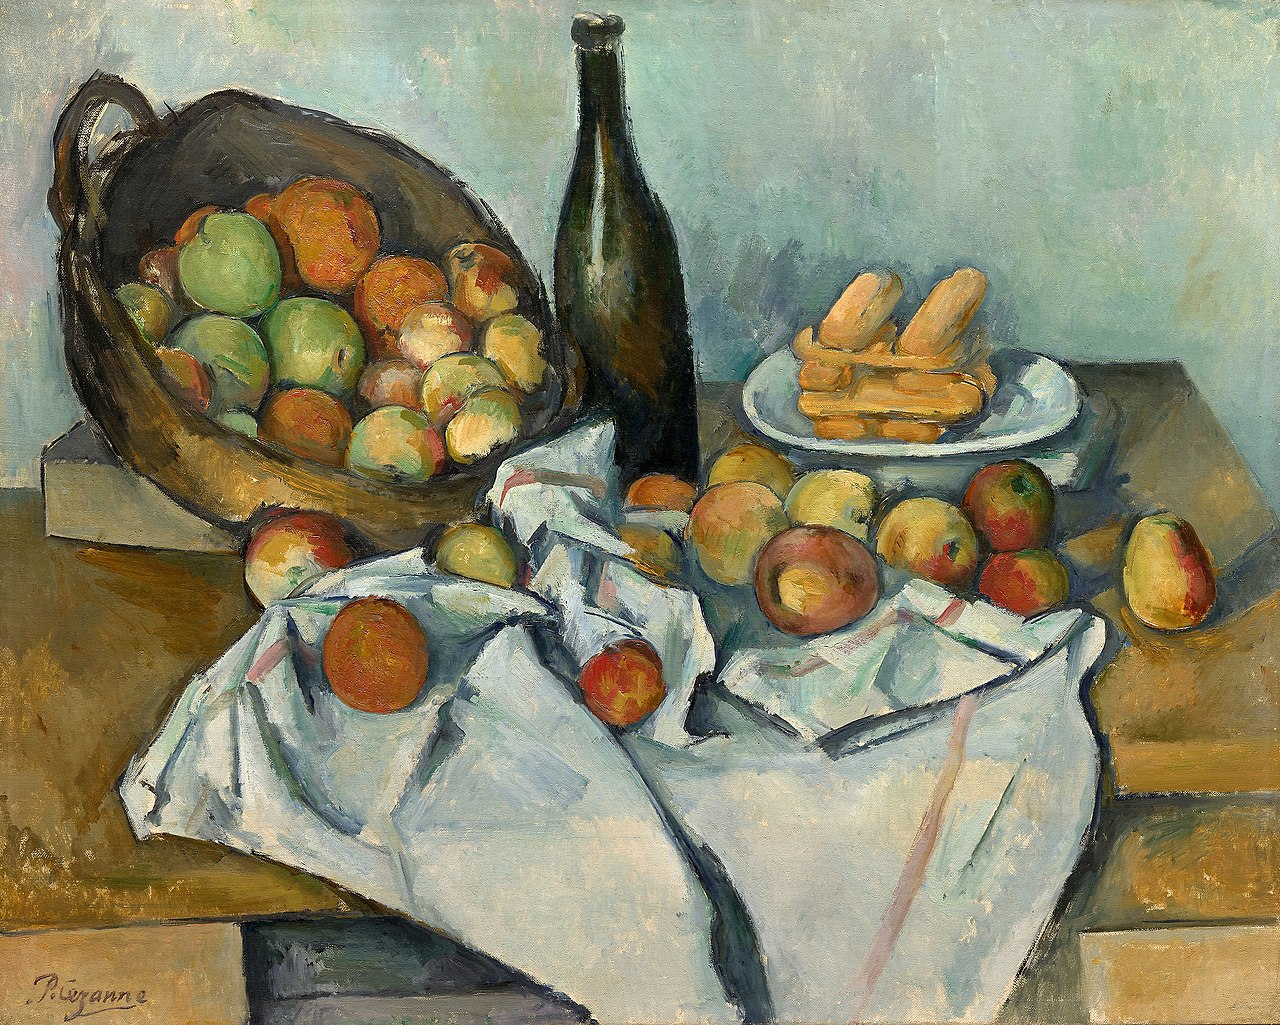 The Basket of Apples by Paul Cézanne